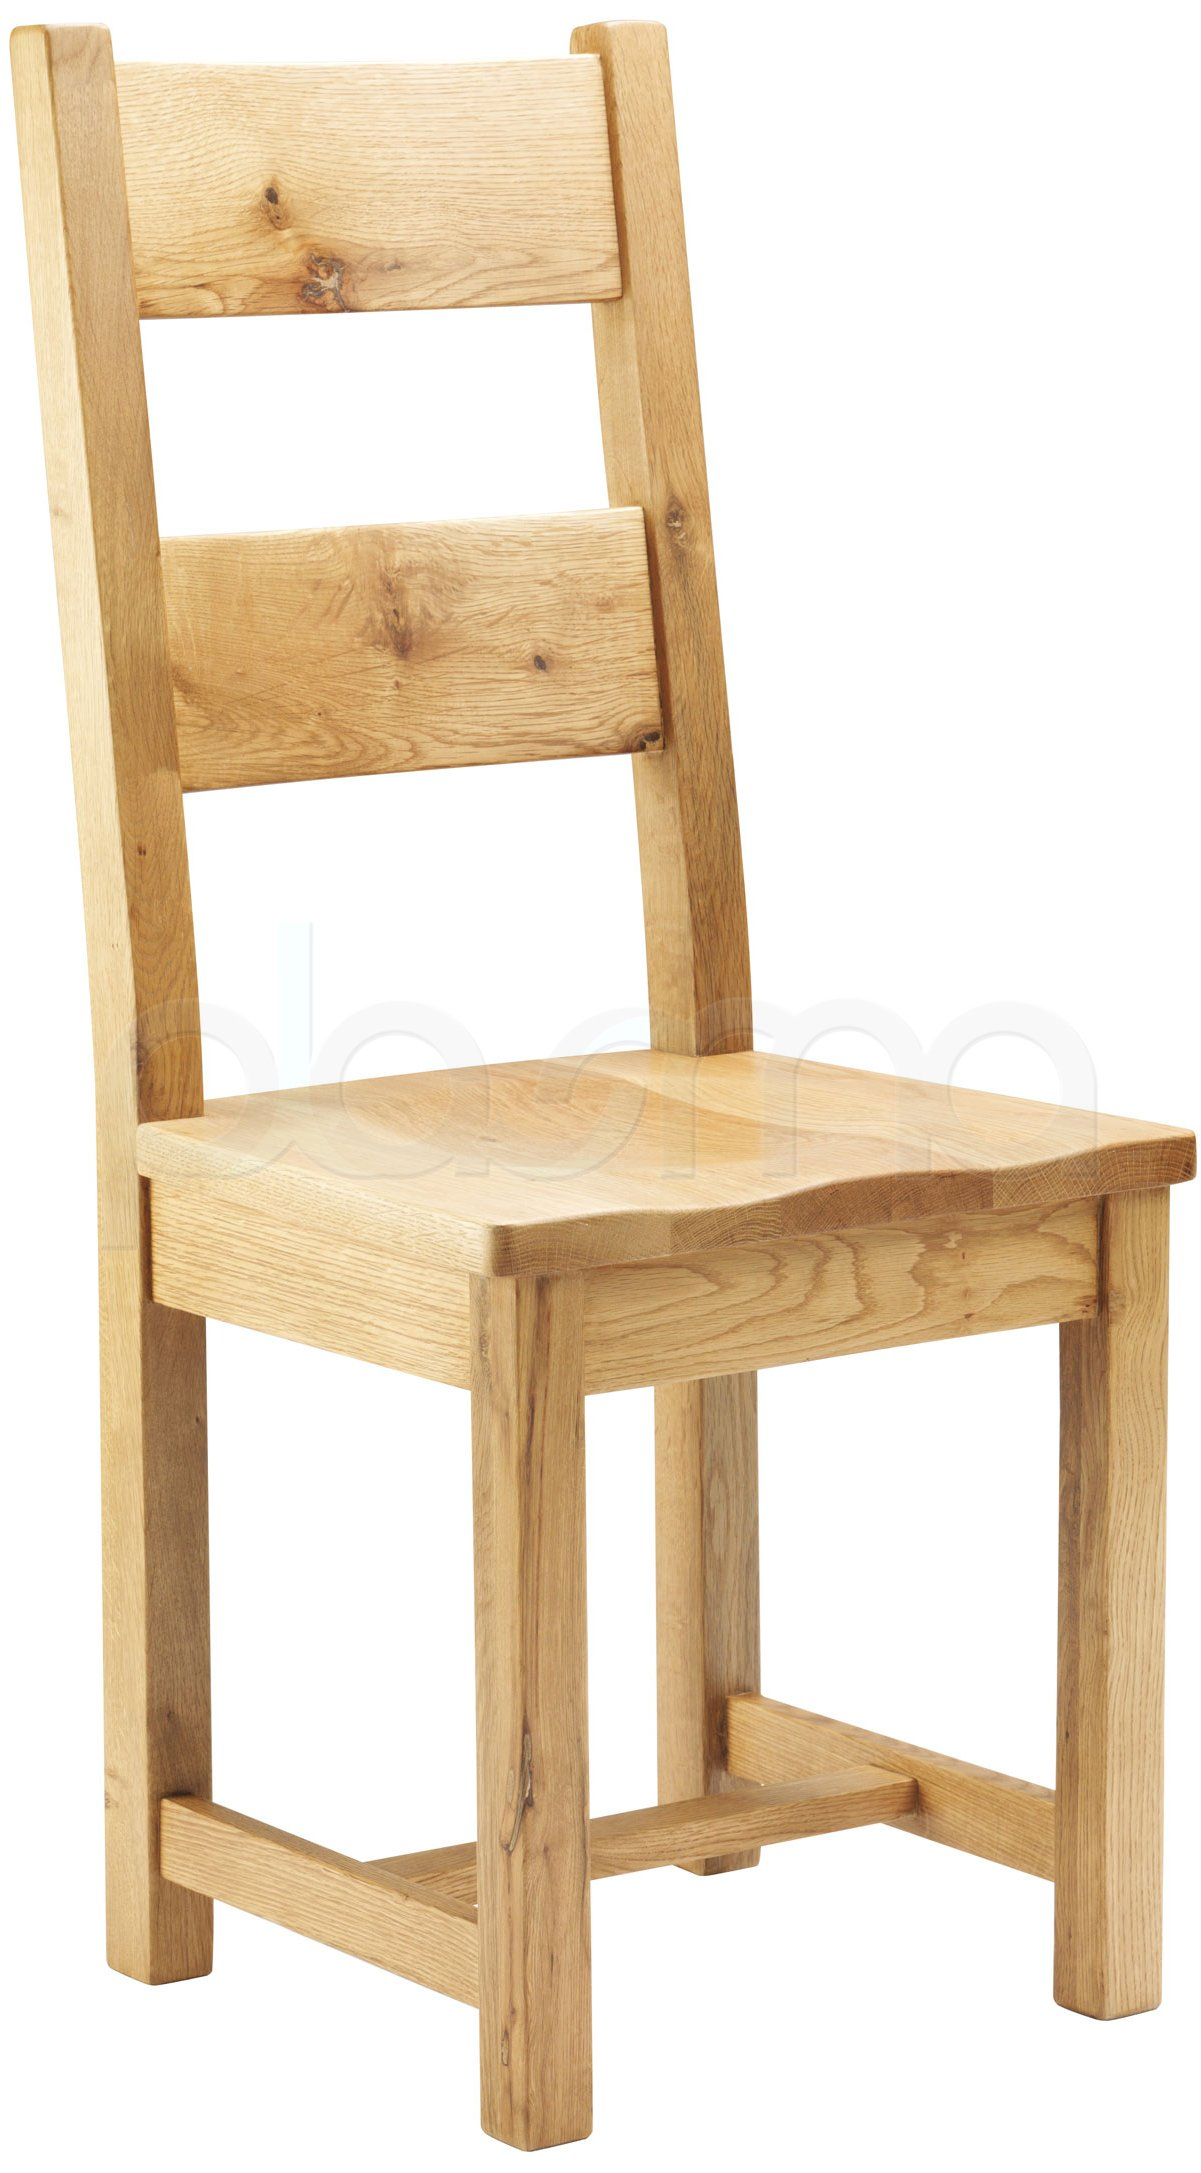 Chunky Oak Dining Chair With Wooden Seat